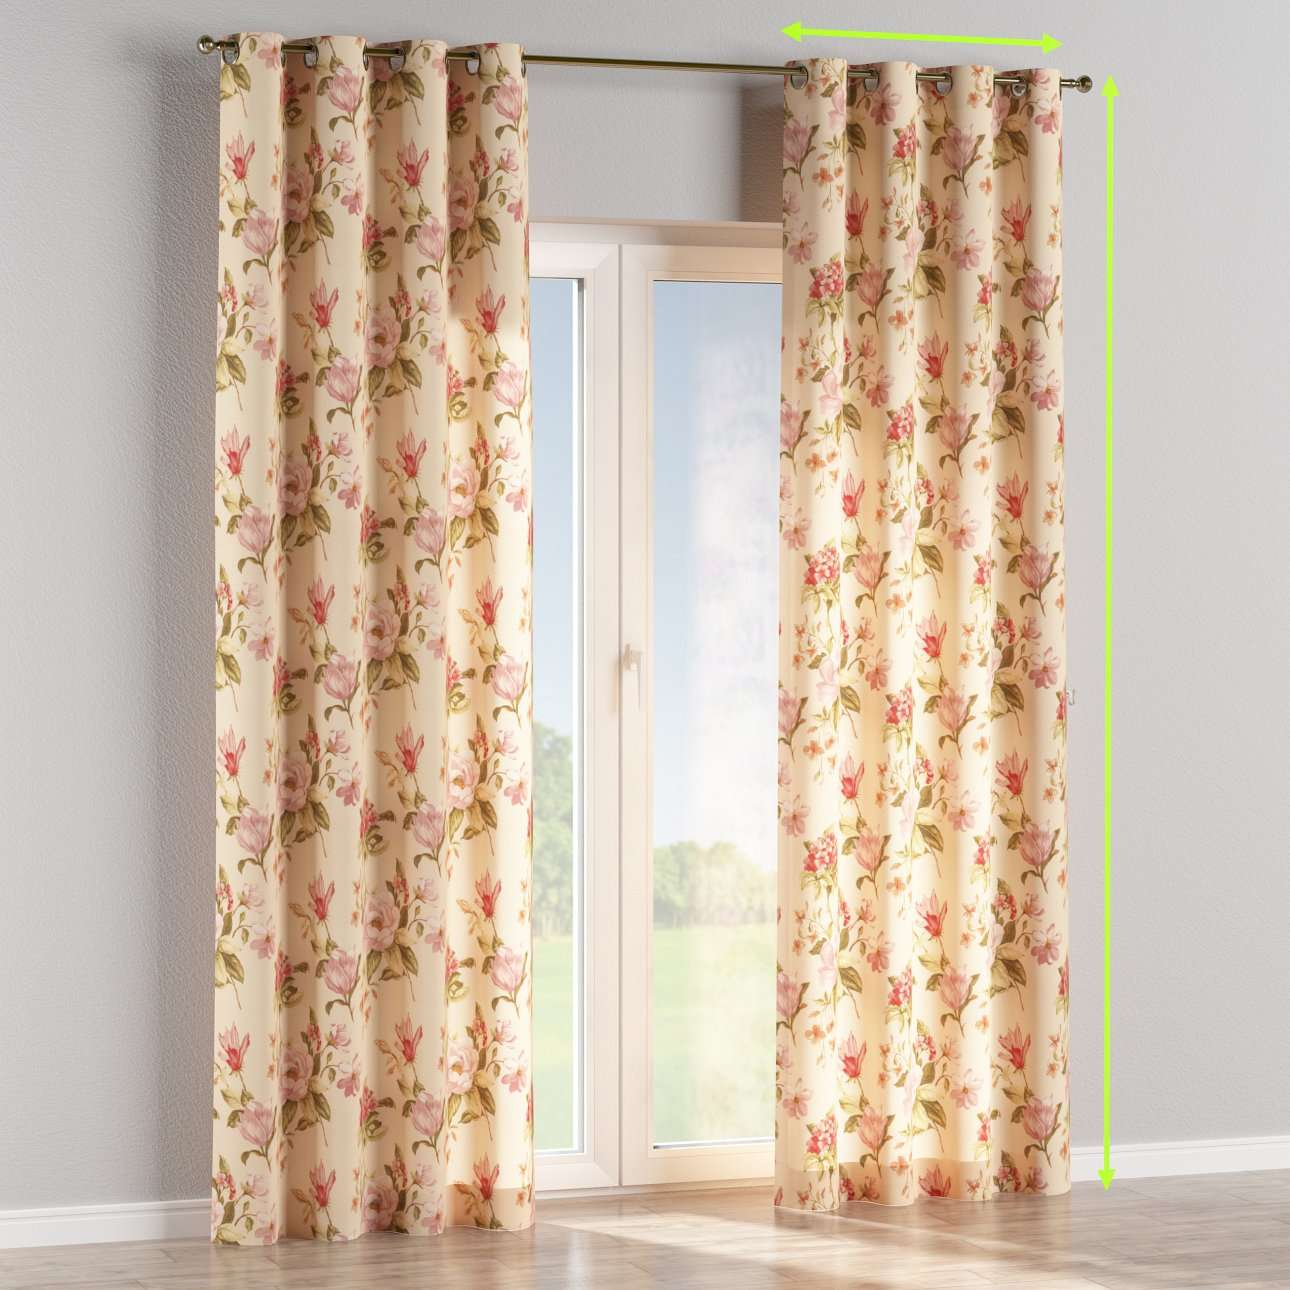 Eyelet lined curtain in collection Londres, fabric: 123-05